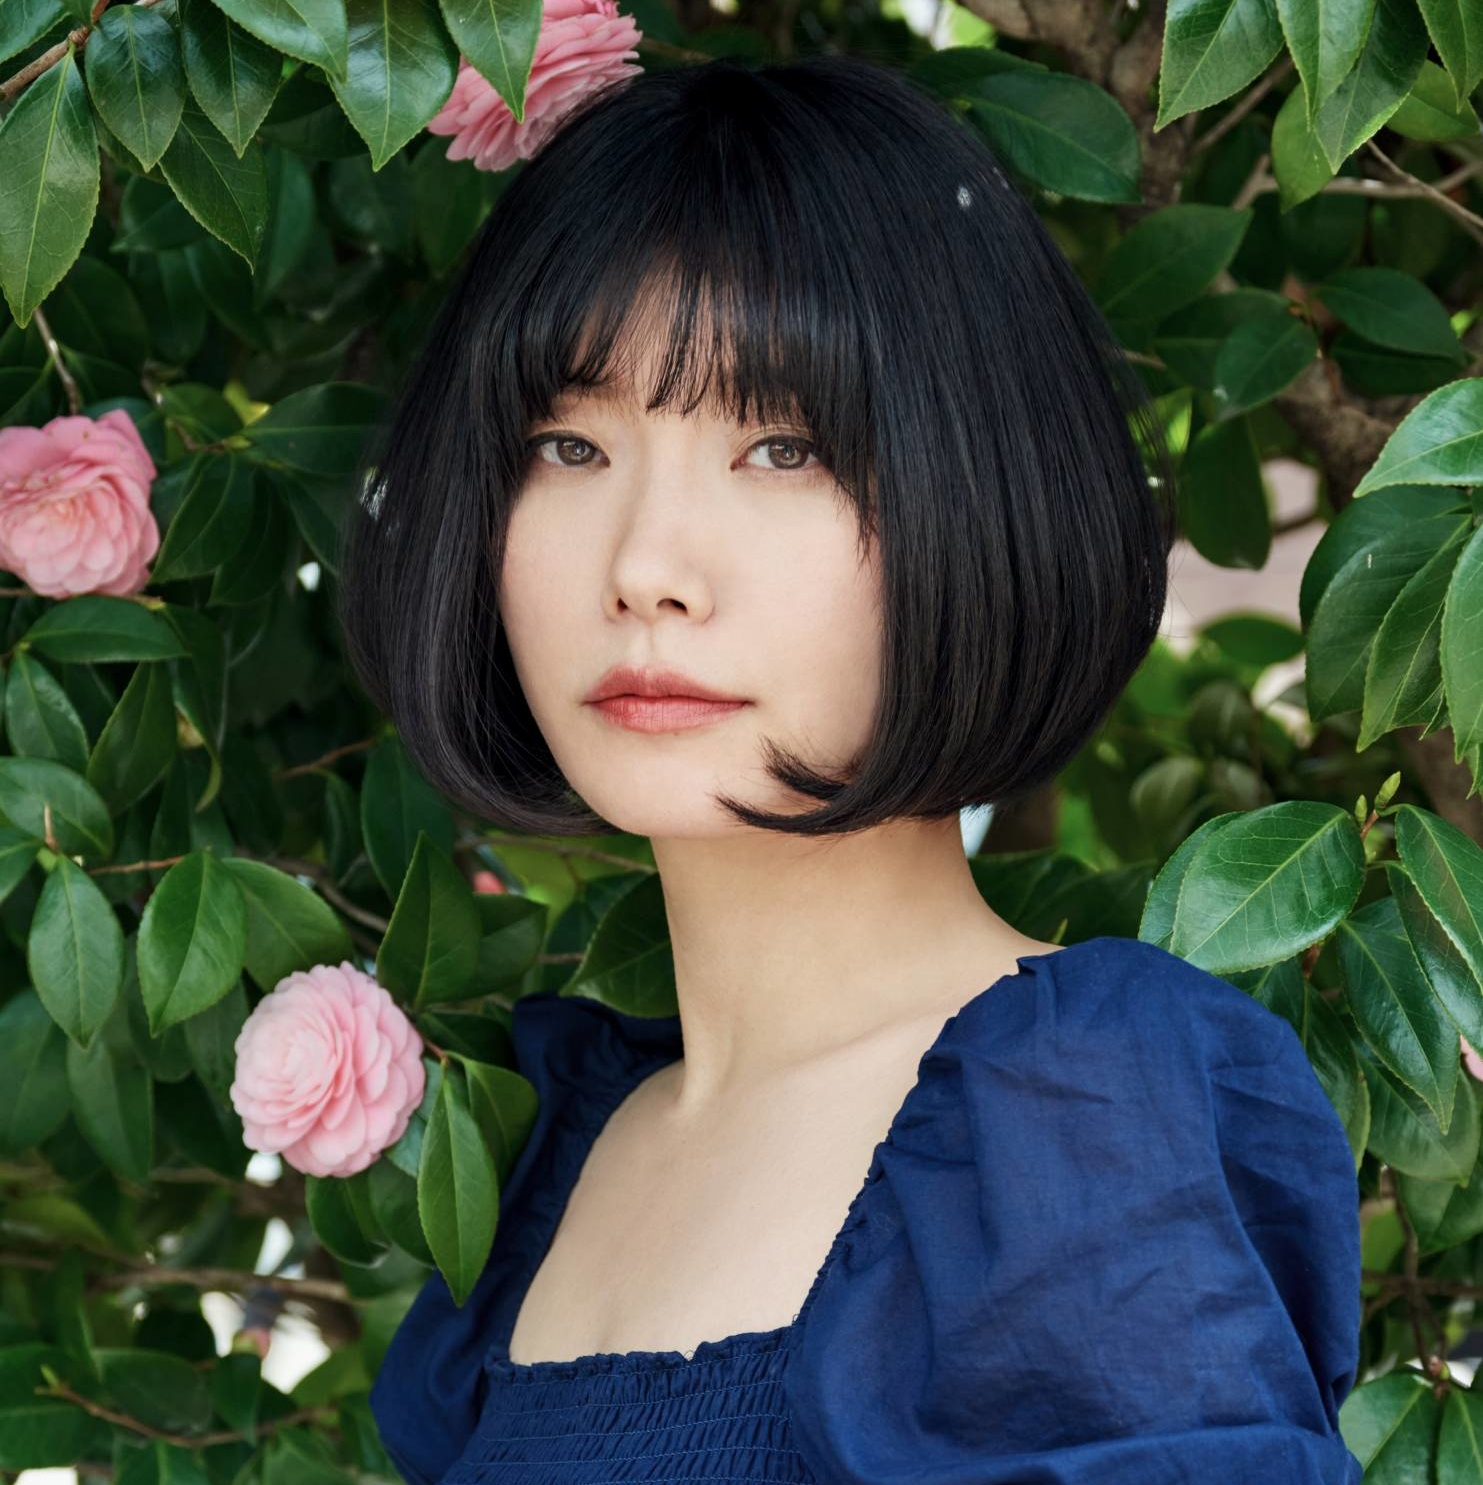 A better place: Author Mieko Kawakami says she wrote 'Heaven' to shed light on the realities of bullying and help 'young people to survive harsh times.' | REIKO TOYAMA